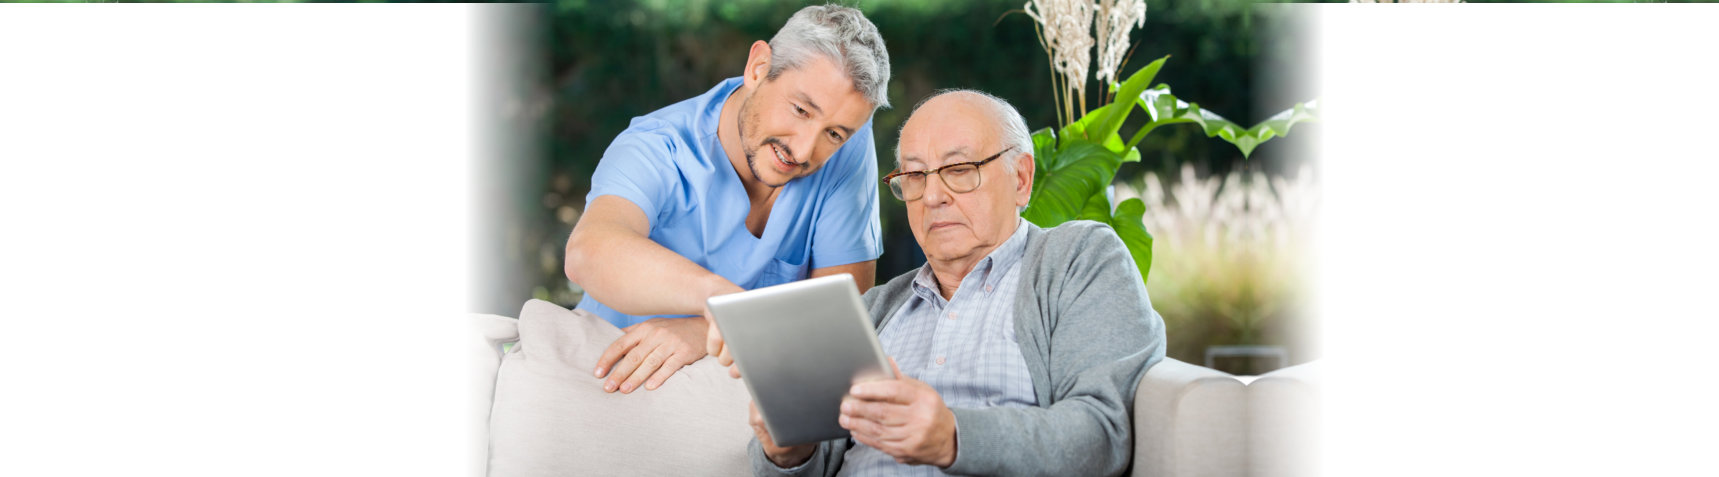 old man and caregiver using tablet